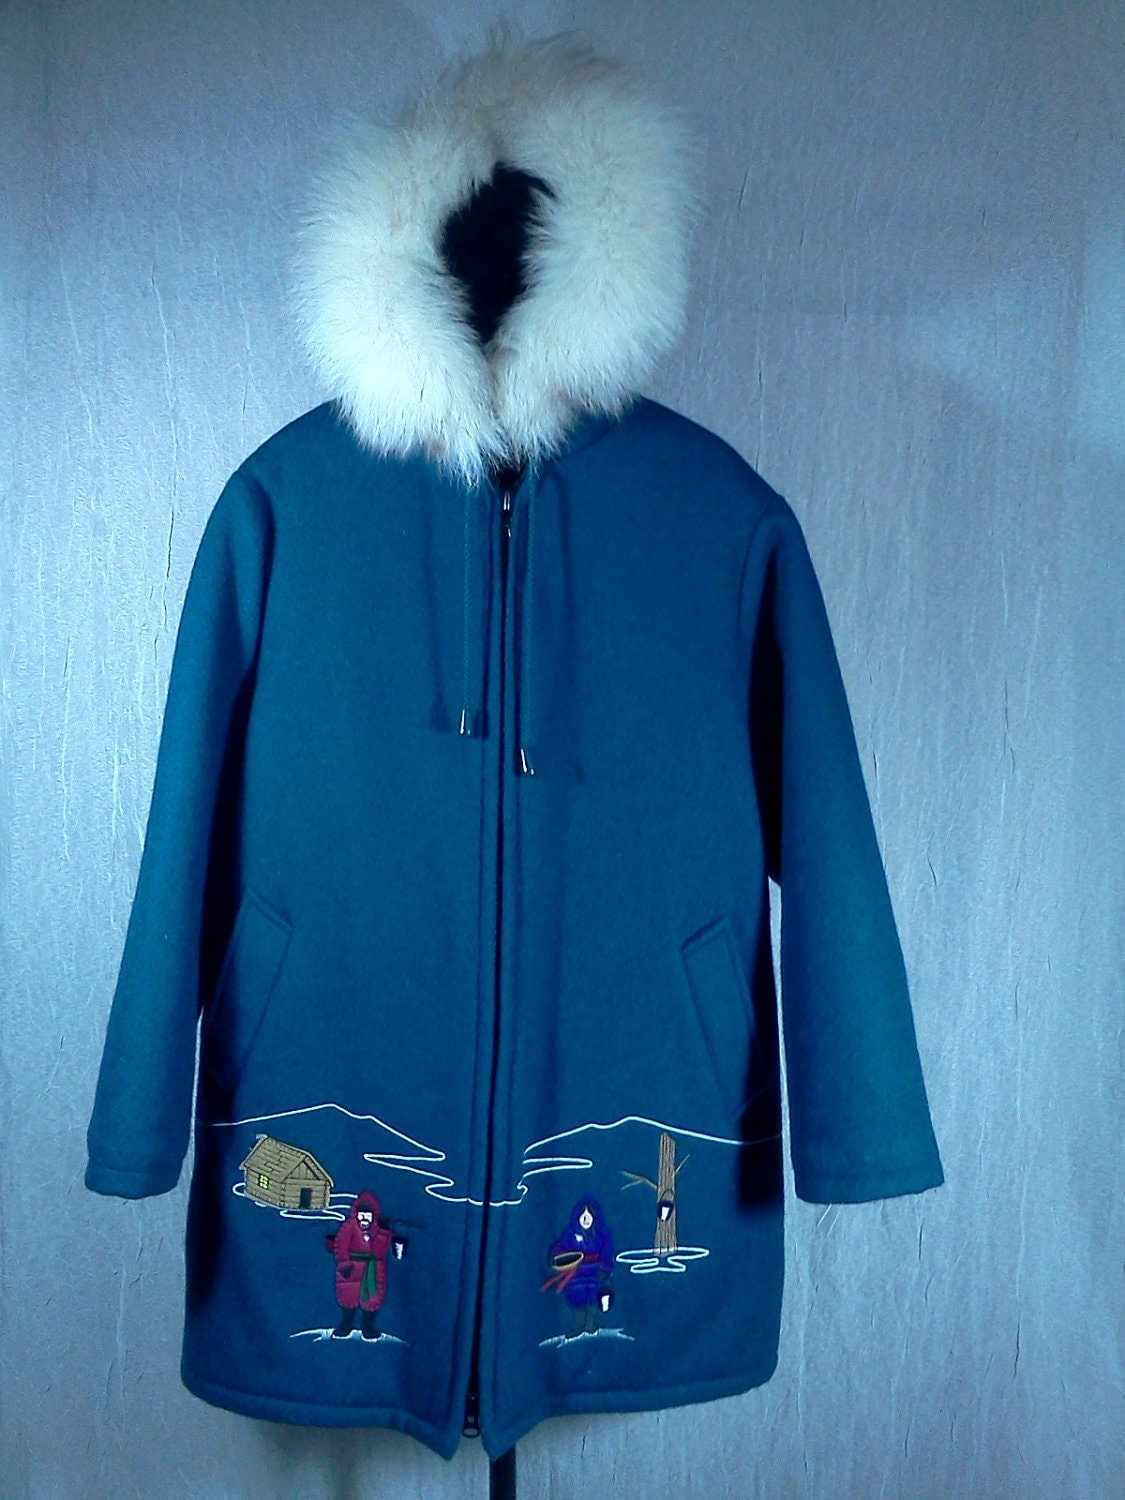 Vintage Inuit Eskimo Parka Wool Jacket Emroidered Fur Trim